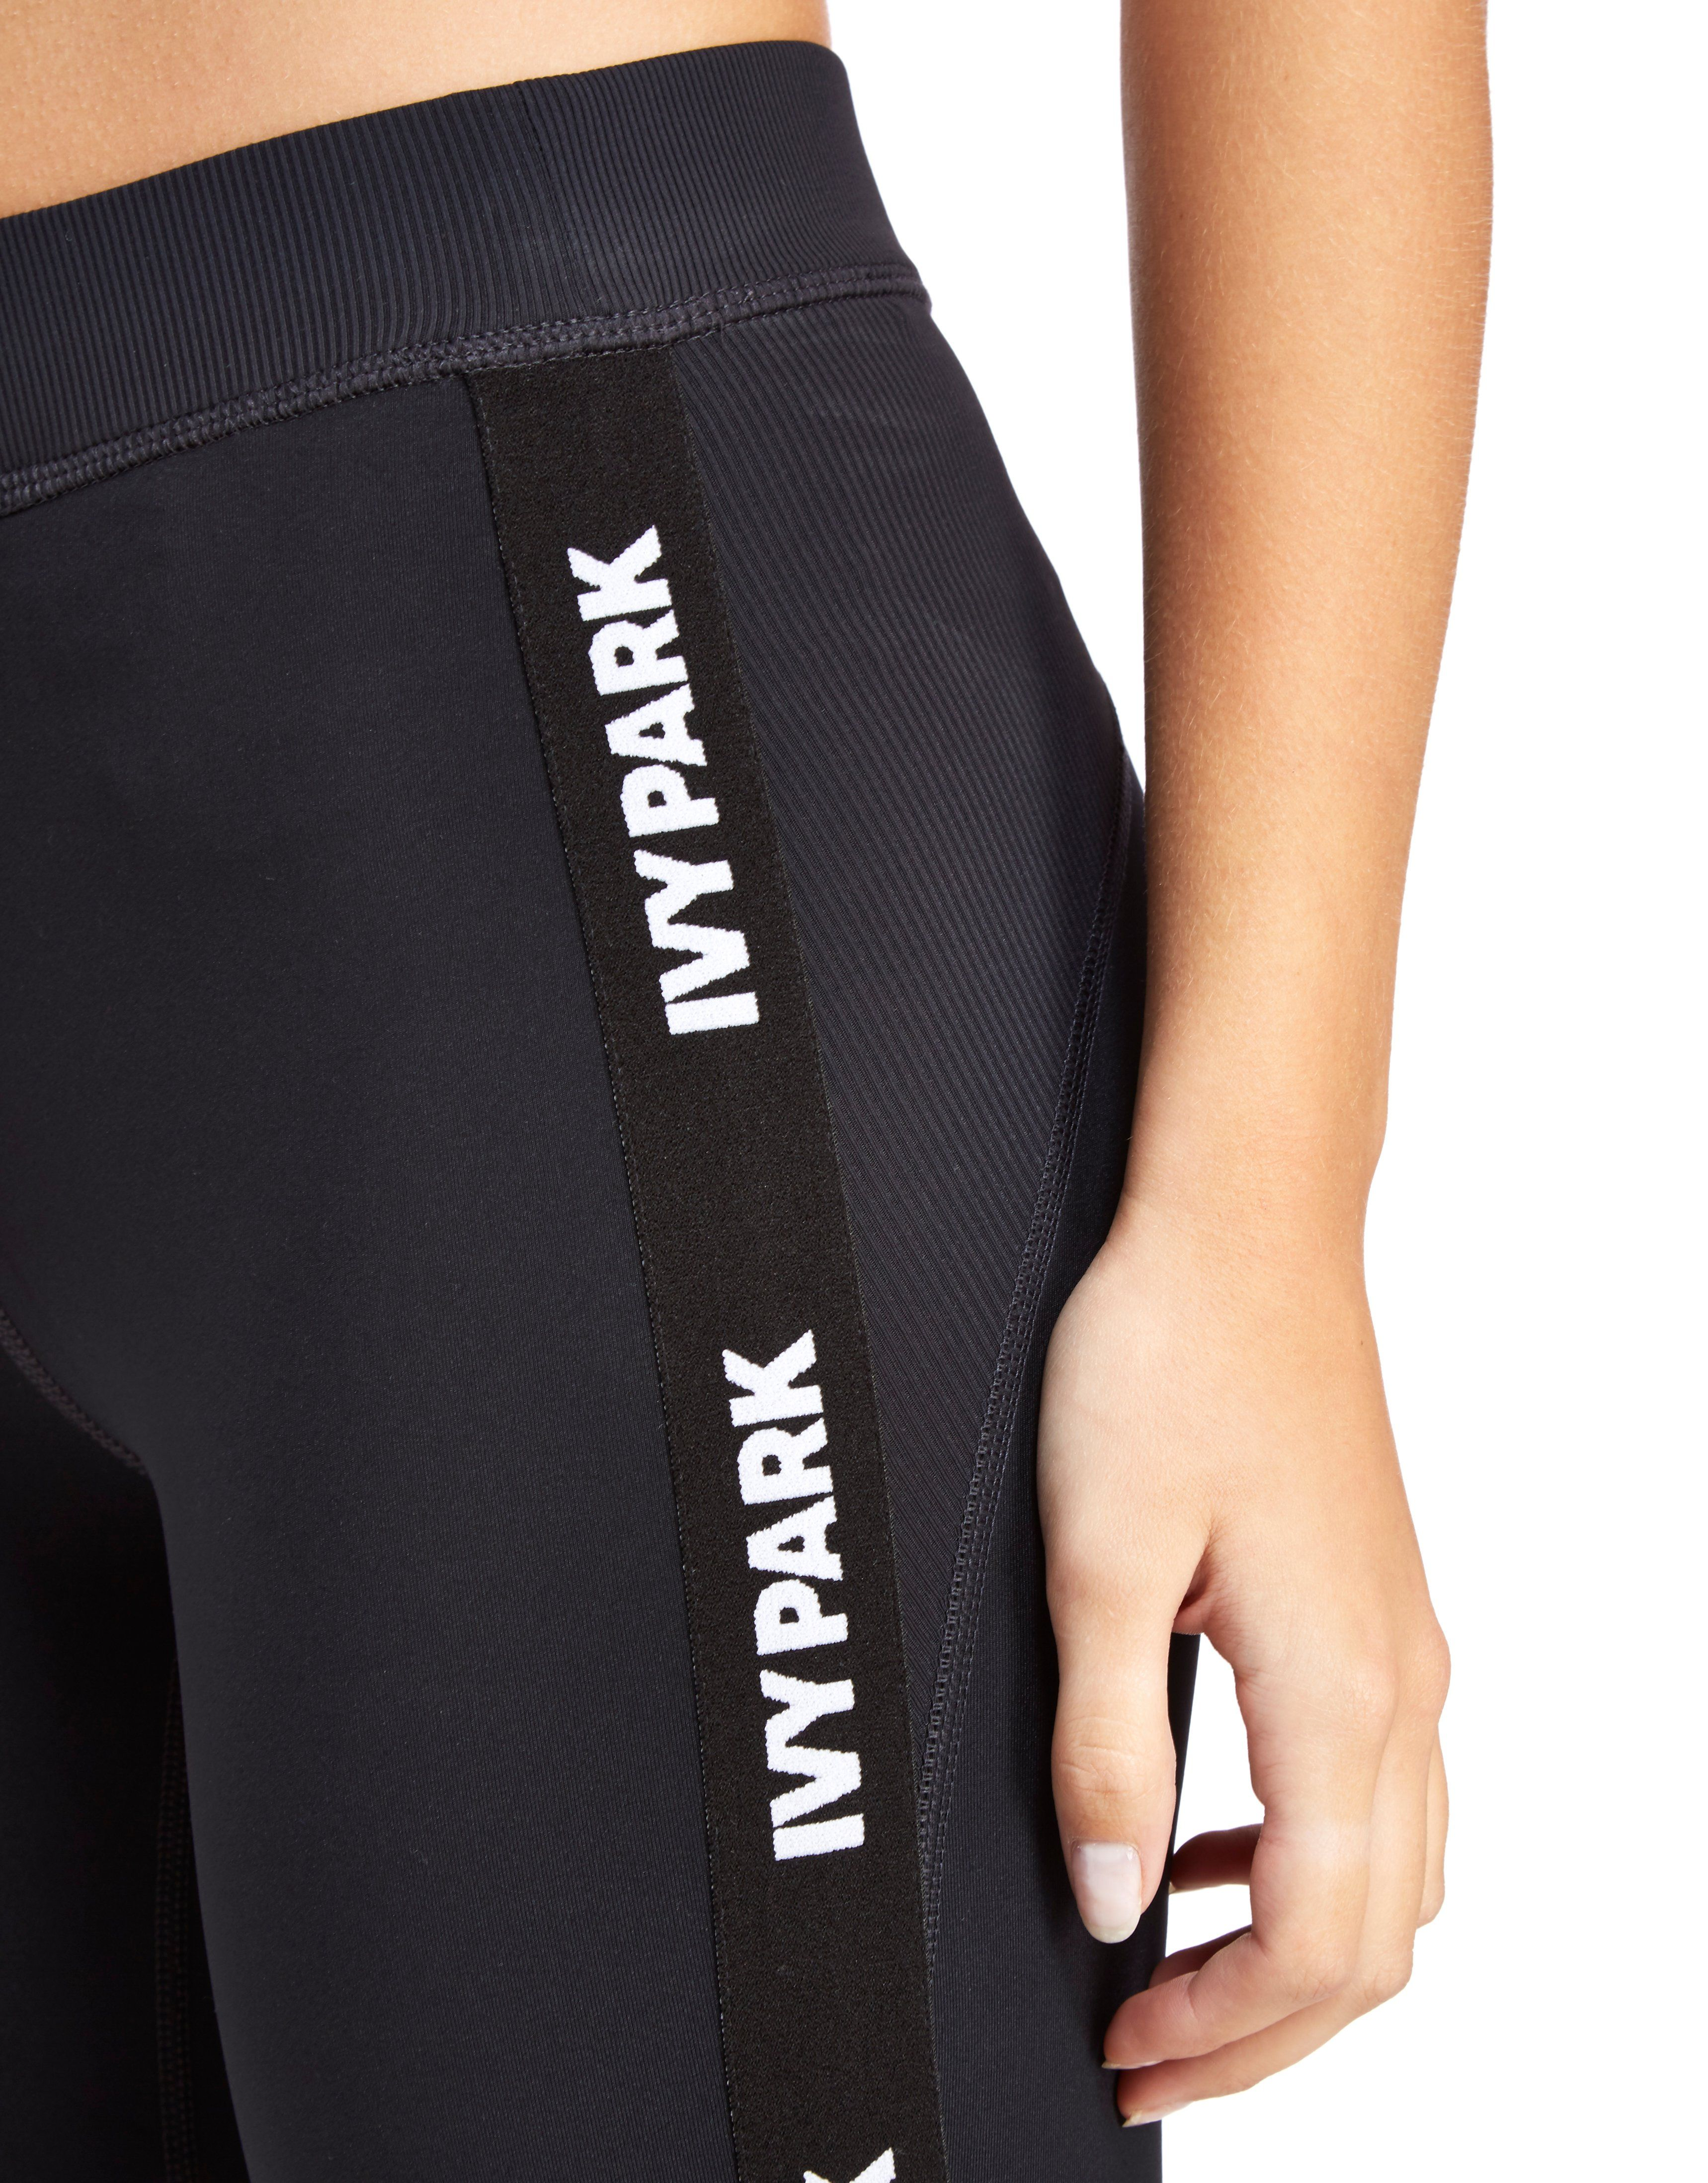 IVY PARK Tape Tights